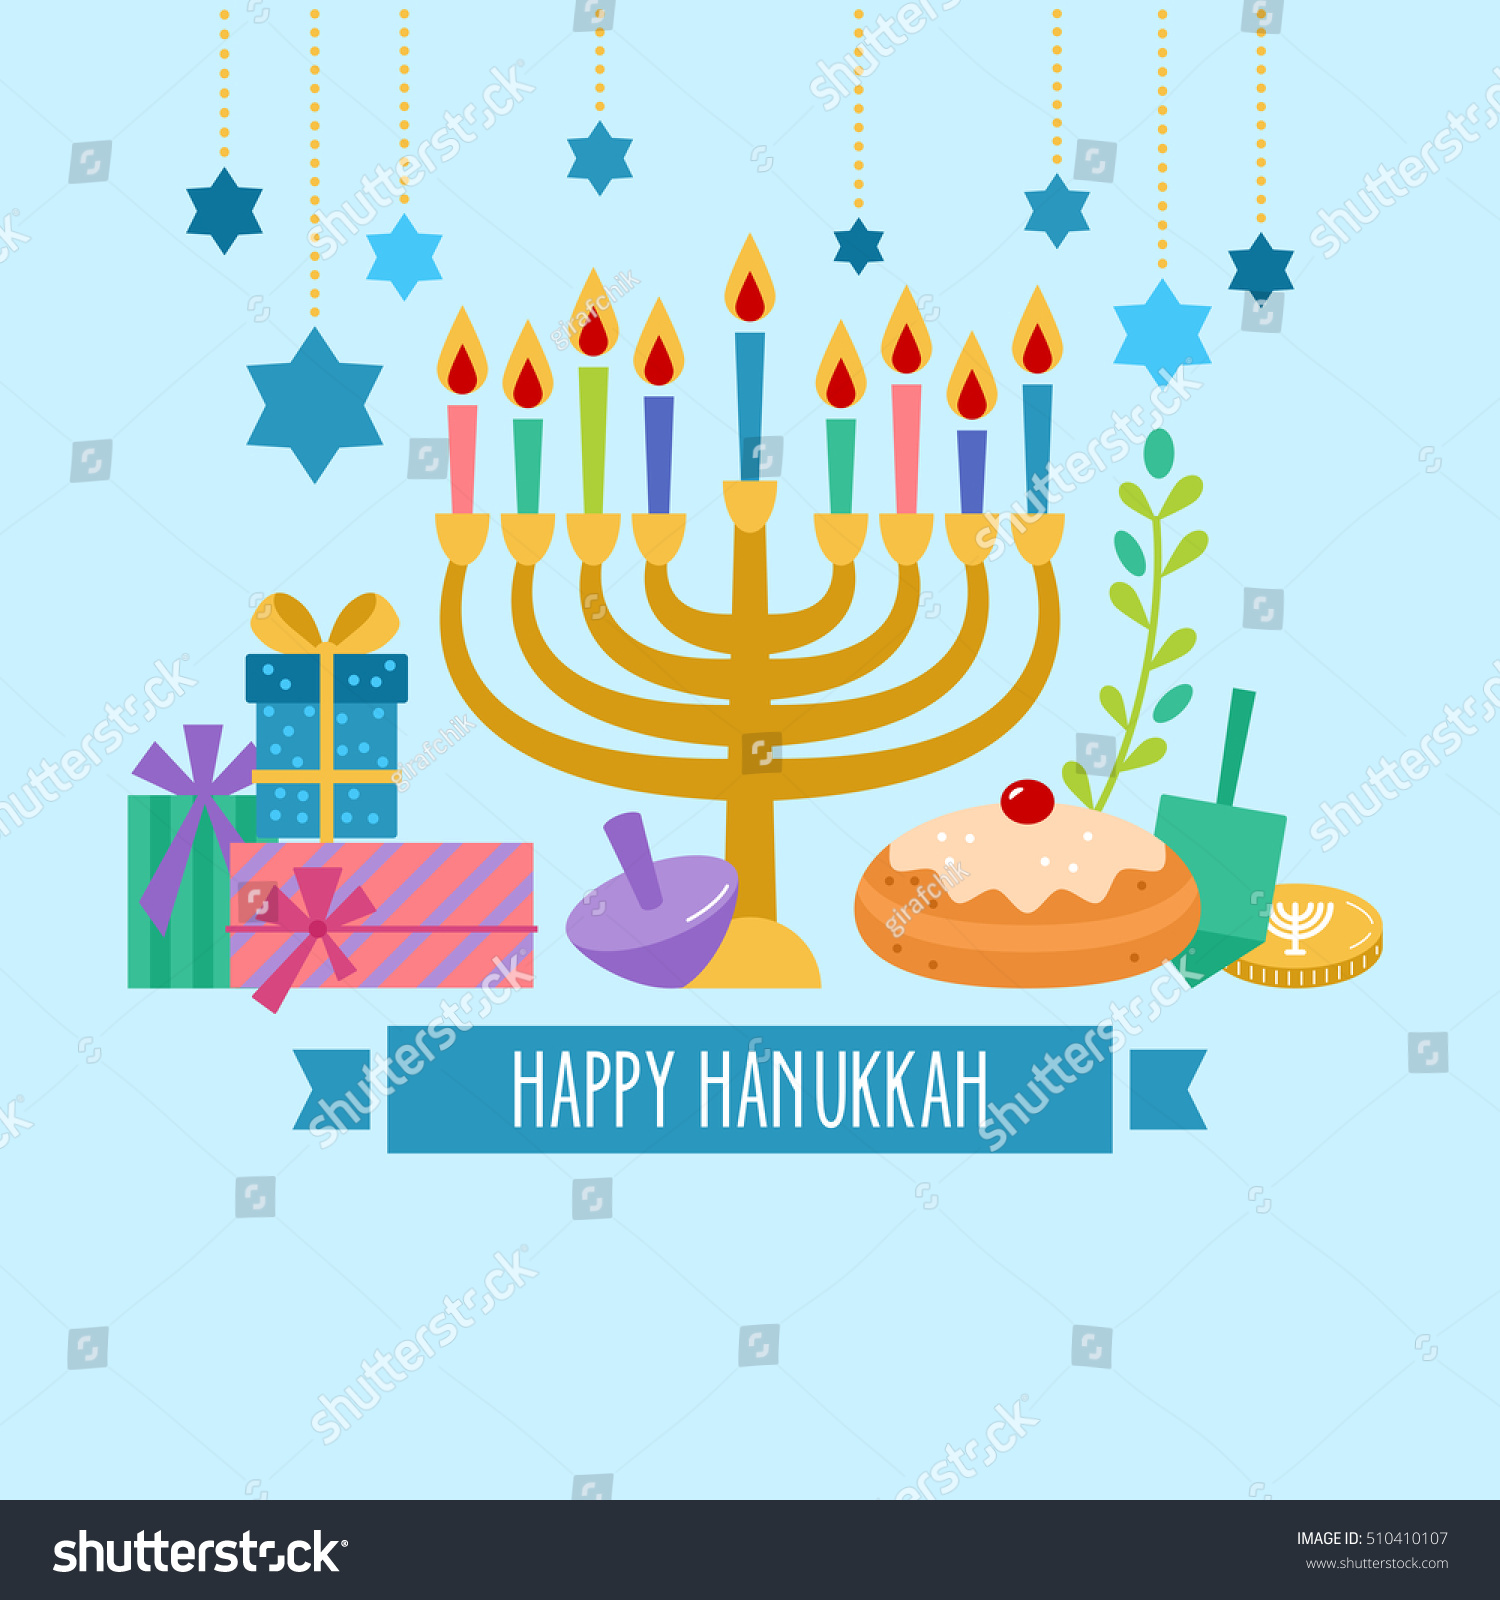 Hanukkah Jewish Holiday Banner Design Stock Vector ...